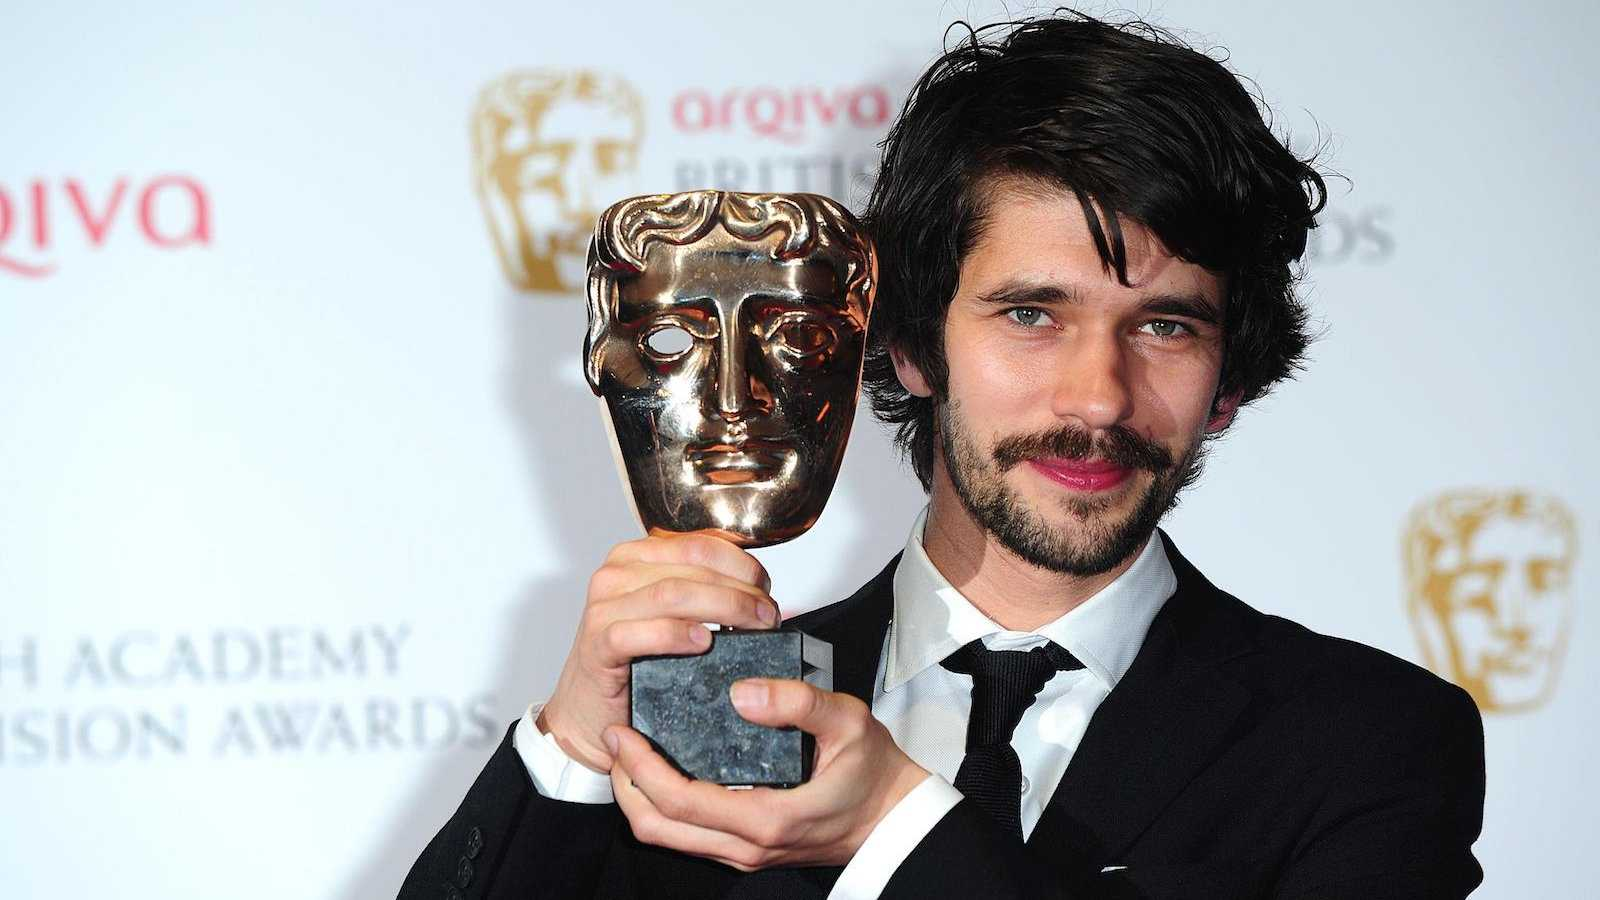 Ben Whishaw is a successful gay actor you have probably seen as Q in the new James Bond movies